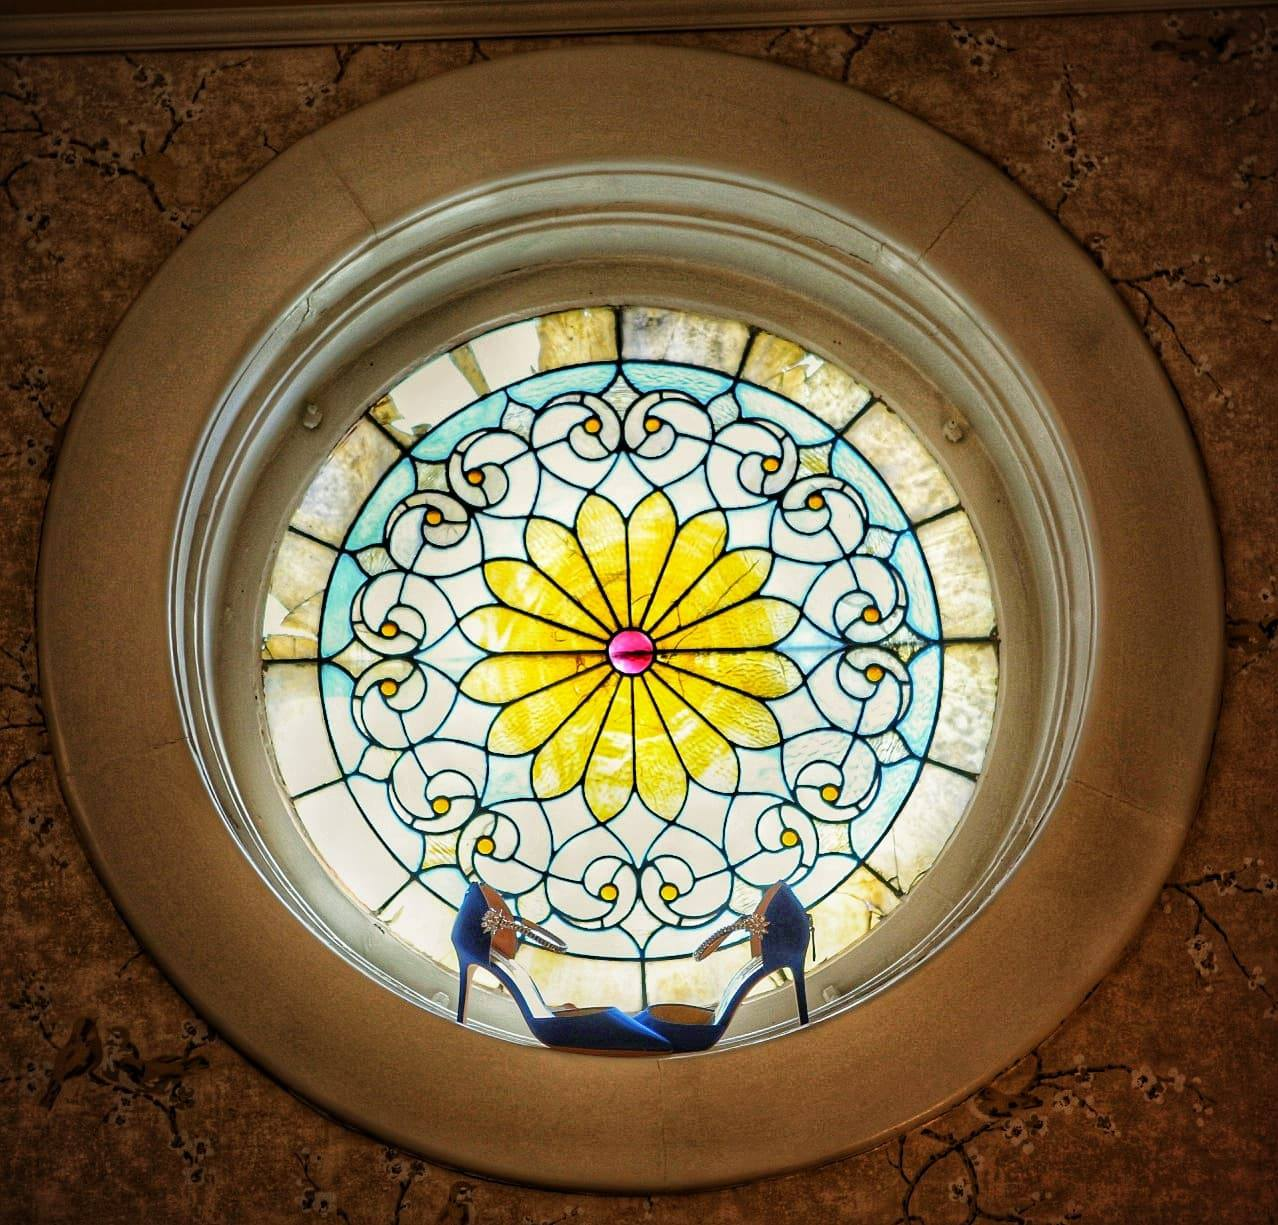 Blue high heels in the stained glass window at Gastonian Inn, in Savannah, Georgia.